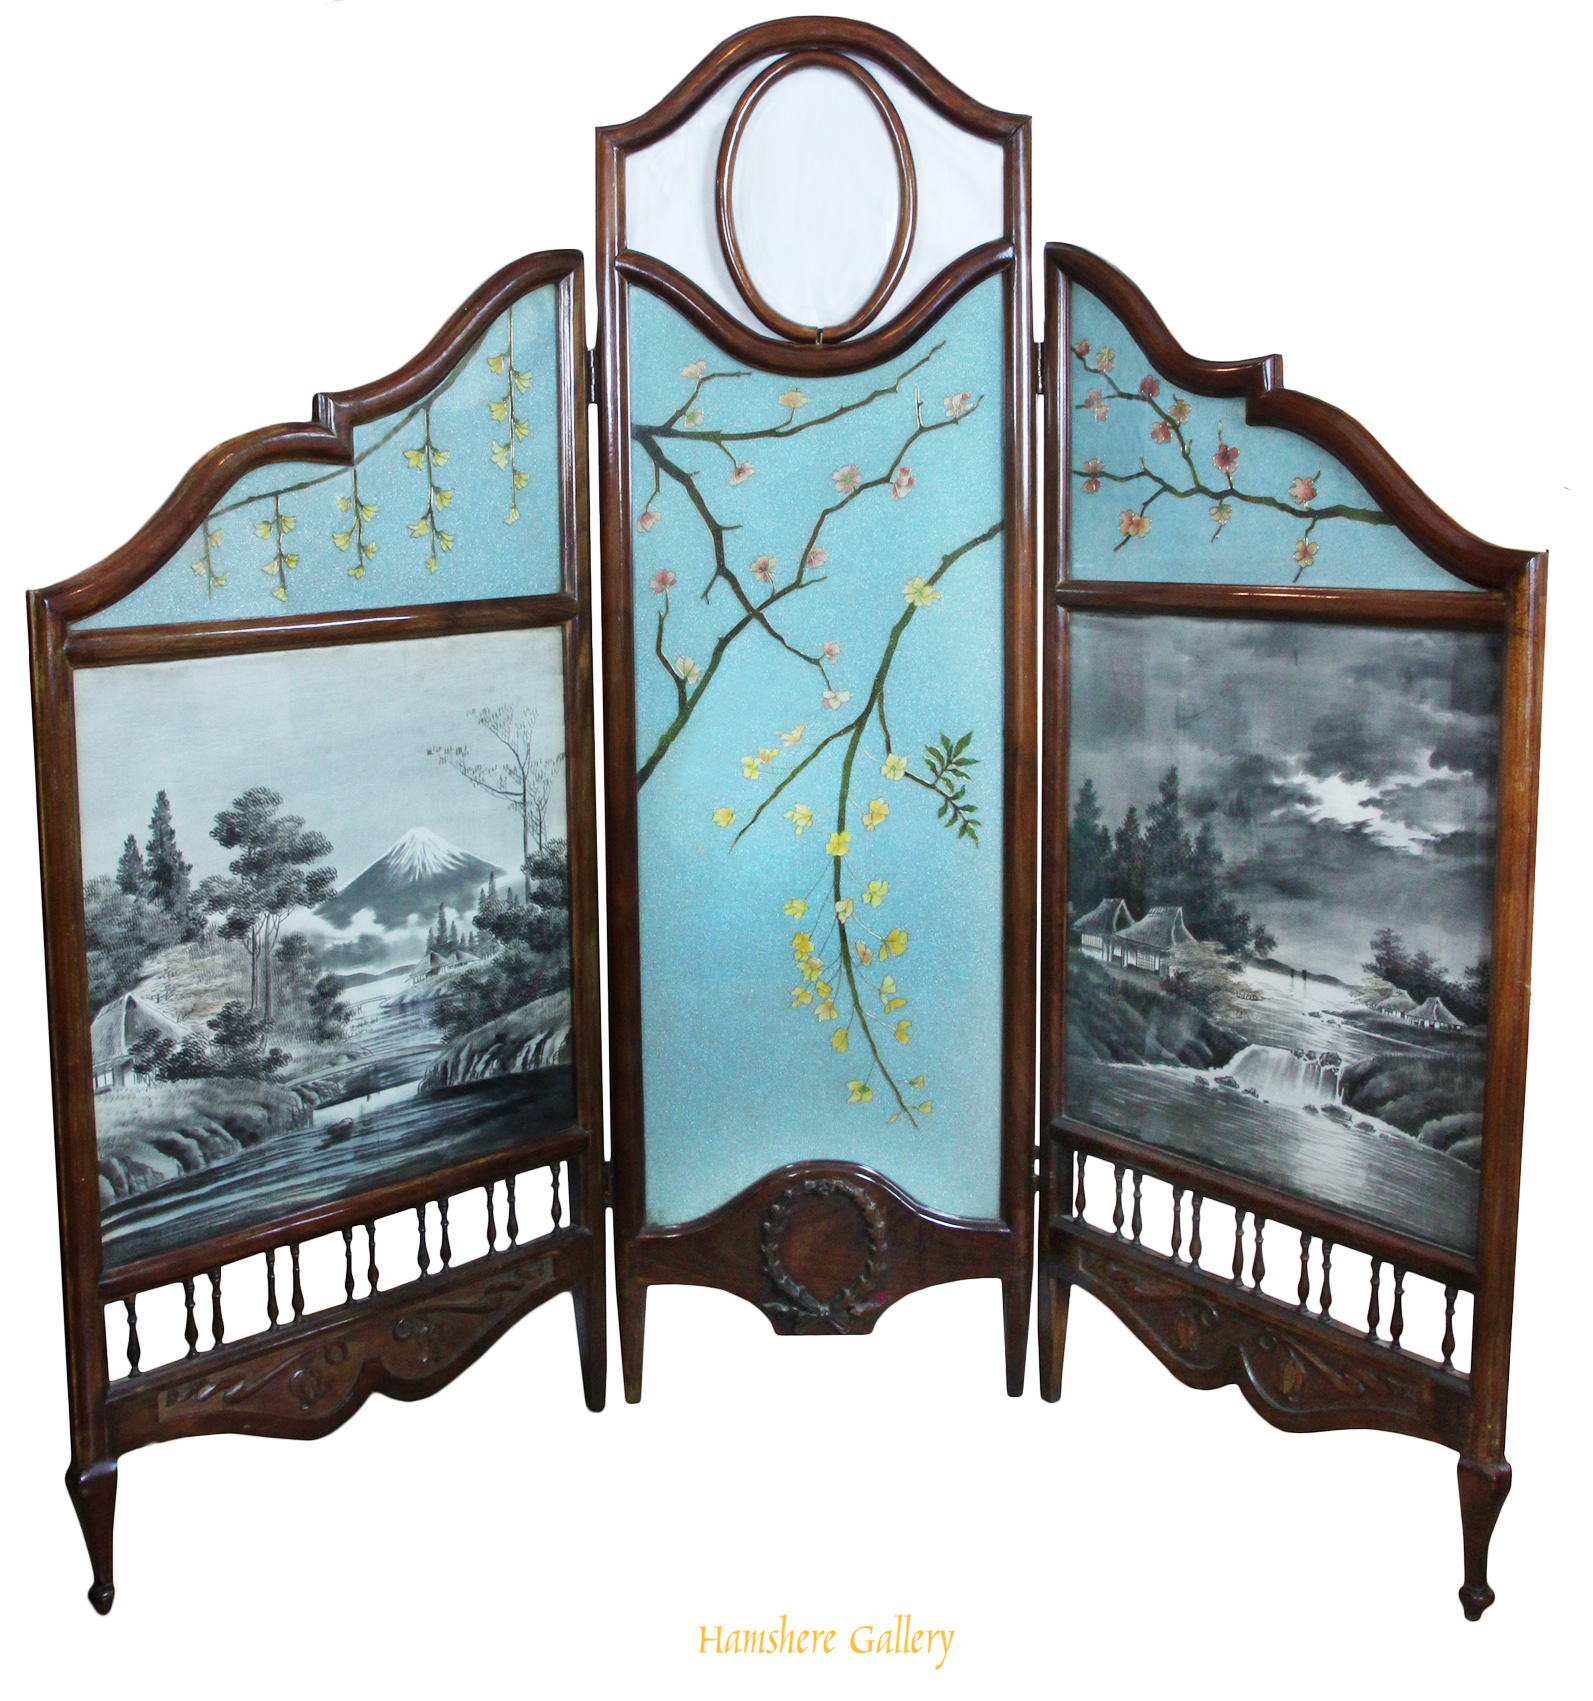 Click for larger image: Late 19th century three-fold screen with Japanese Yuzen Birodo (Yuzen-dyed cut velvet) and Art Nouveau beaded glass panels - Late 19th century three-fold screen with Japanese Yuzen Birodo (Yuzen-dyed cut velvet) and Art Nouveau beaded glass panels